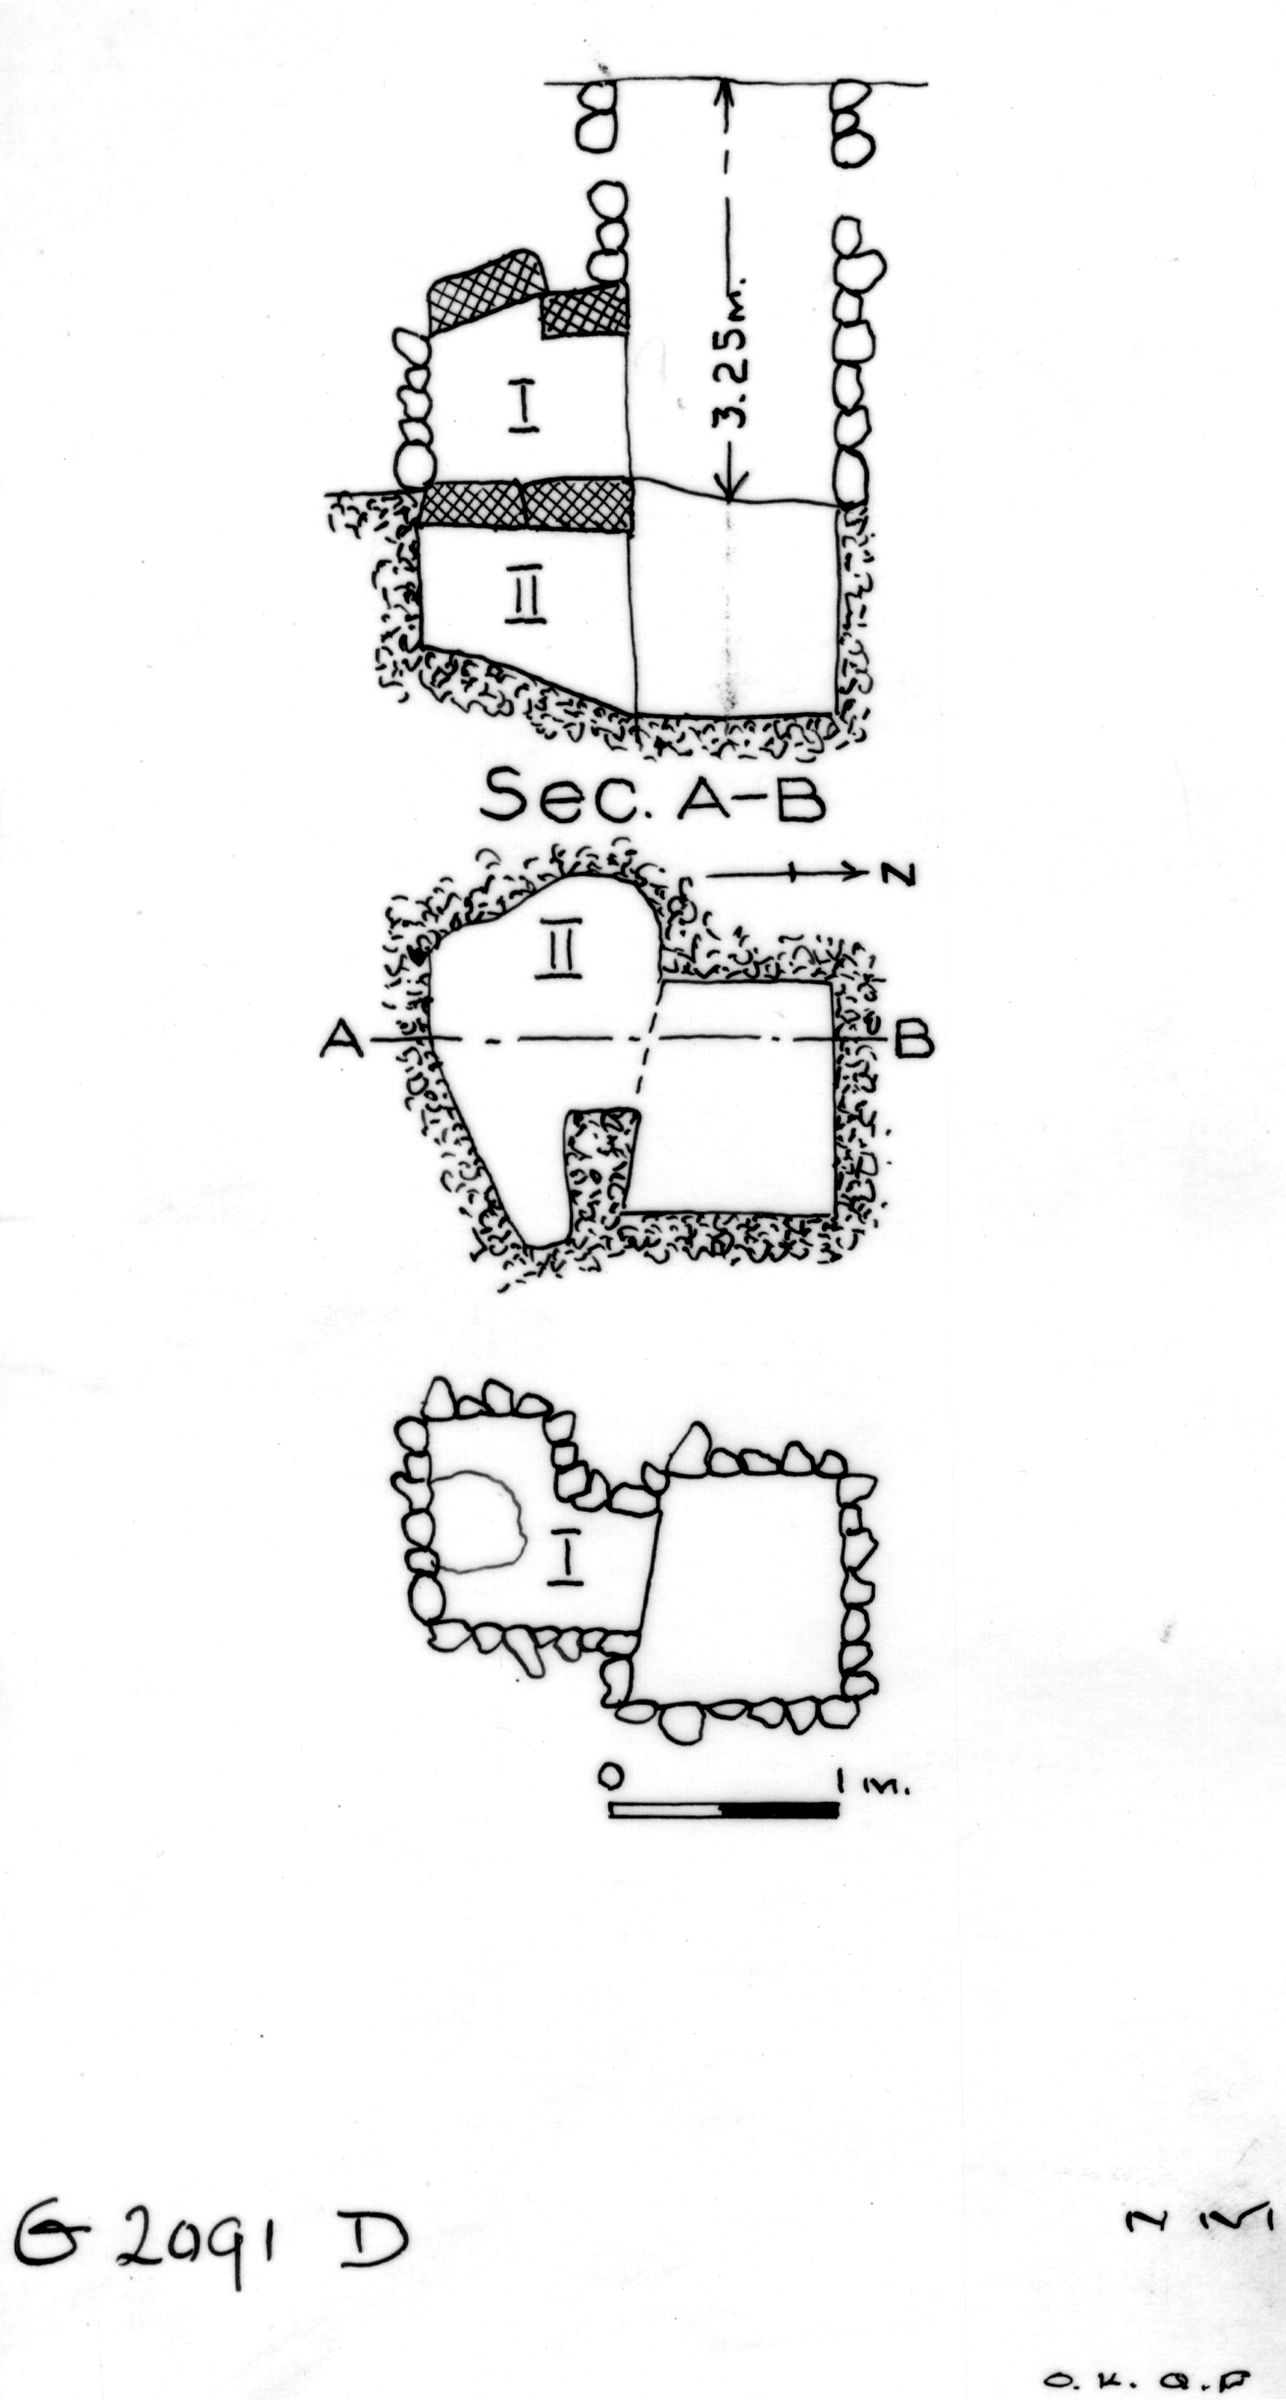 Maps and plans: G 2091, Shaft D